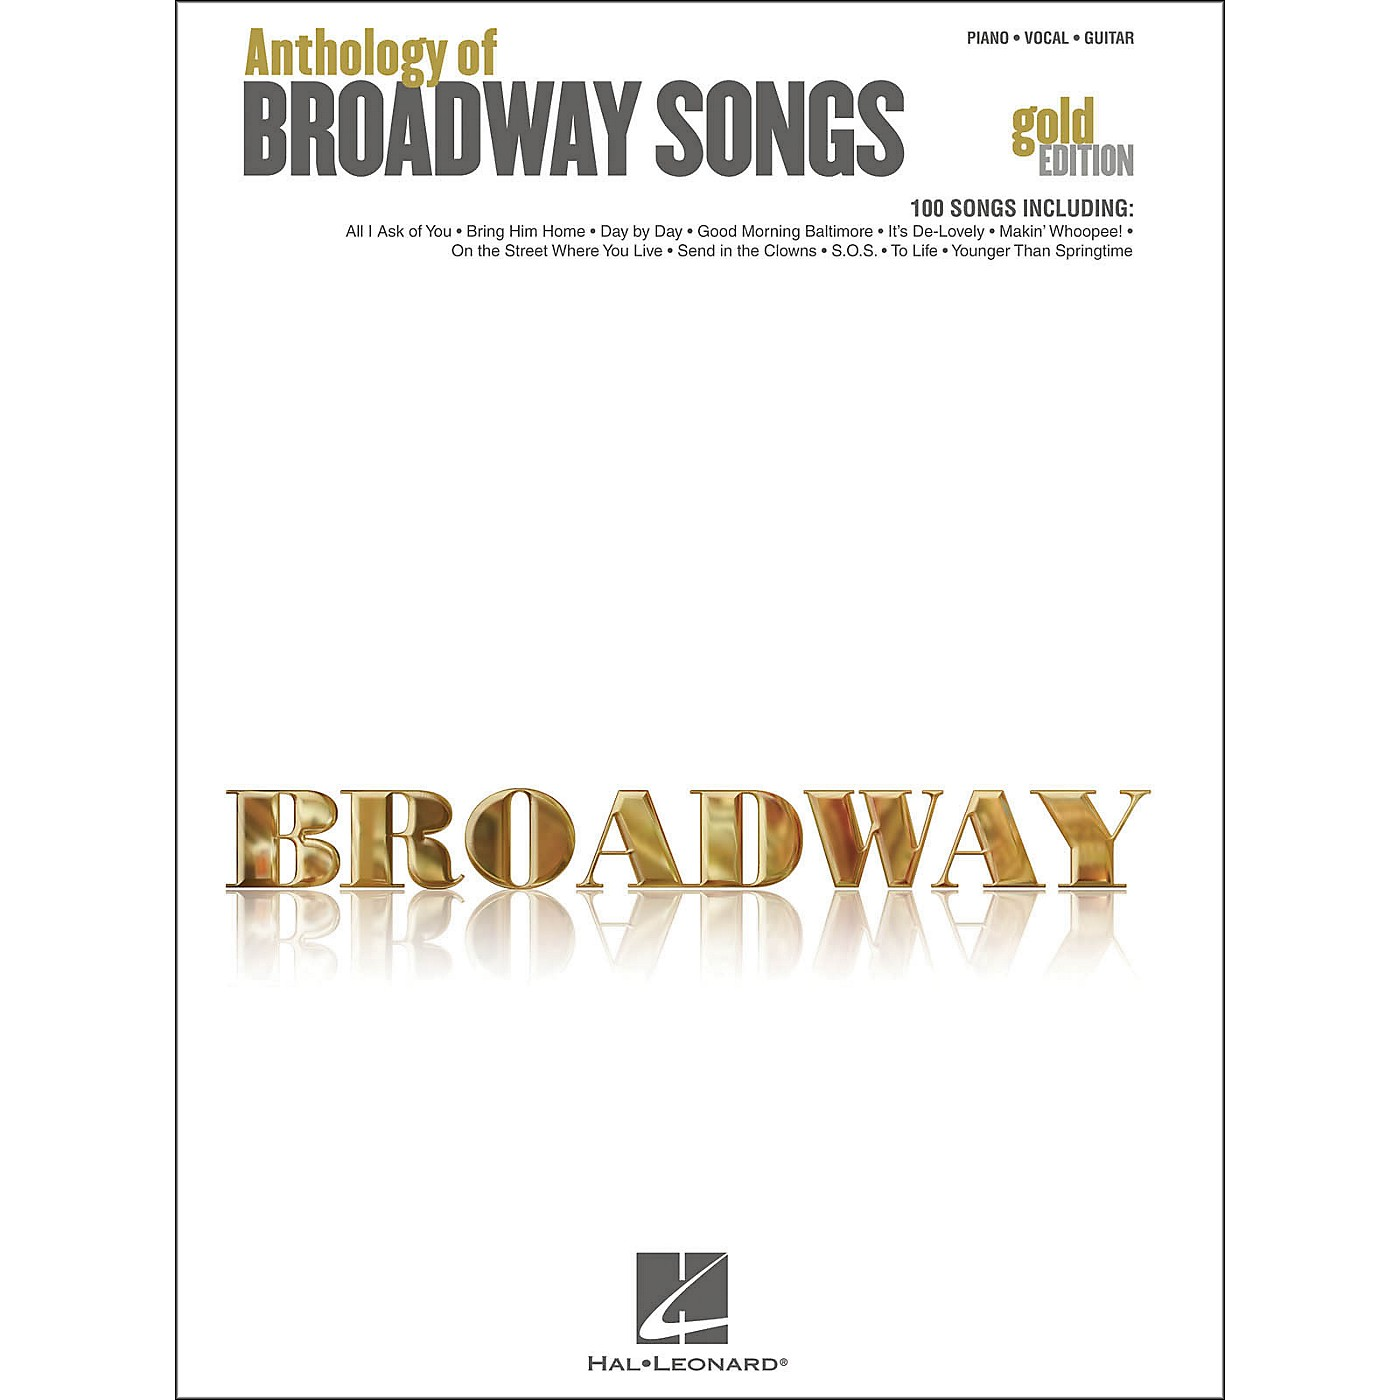 Hal Leonard Anthology Of Broadway Songs - Gold Edition arranged for piano, vocal, and guitar (P/V/G) thumbnail